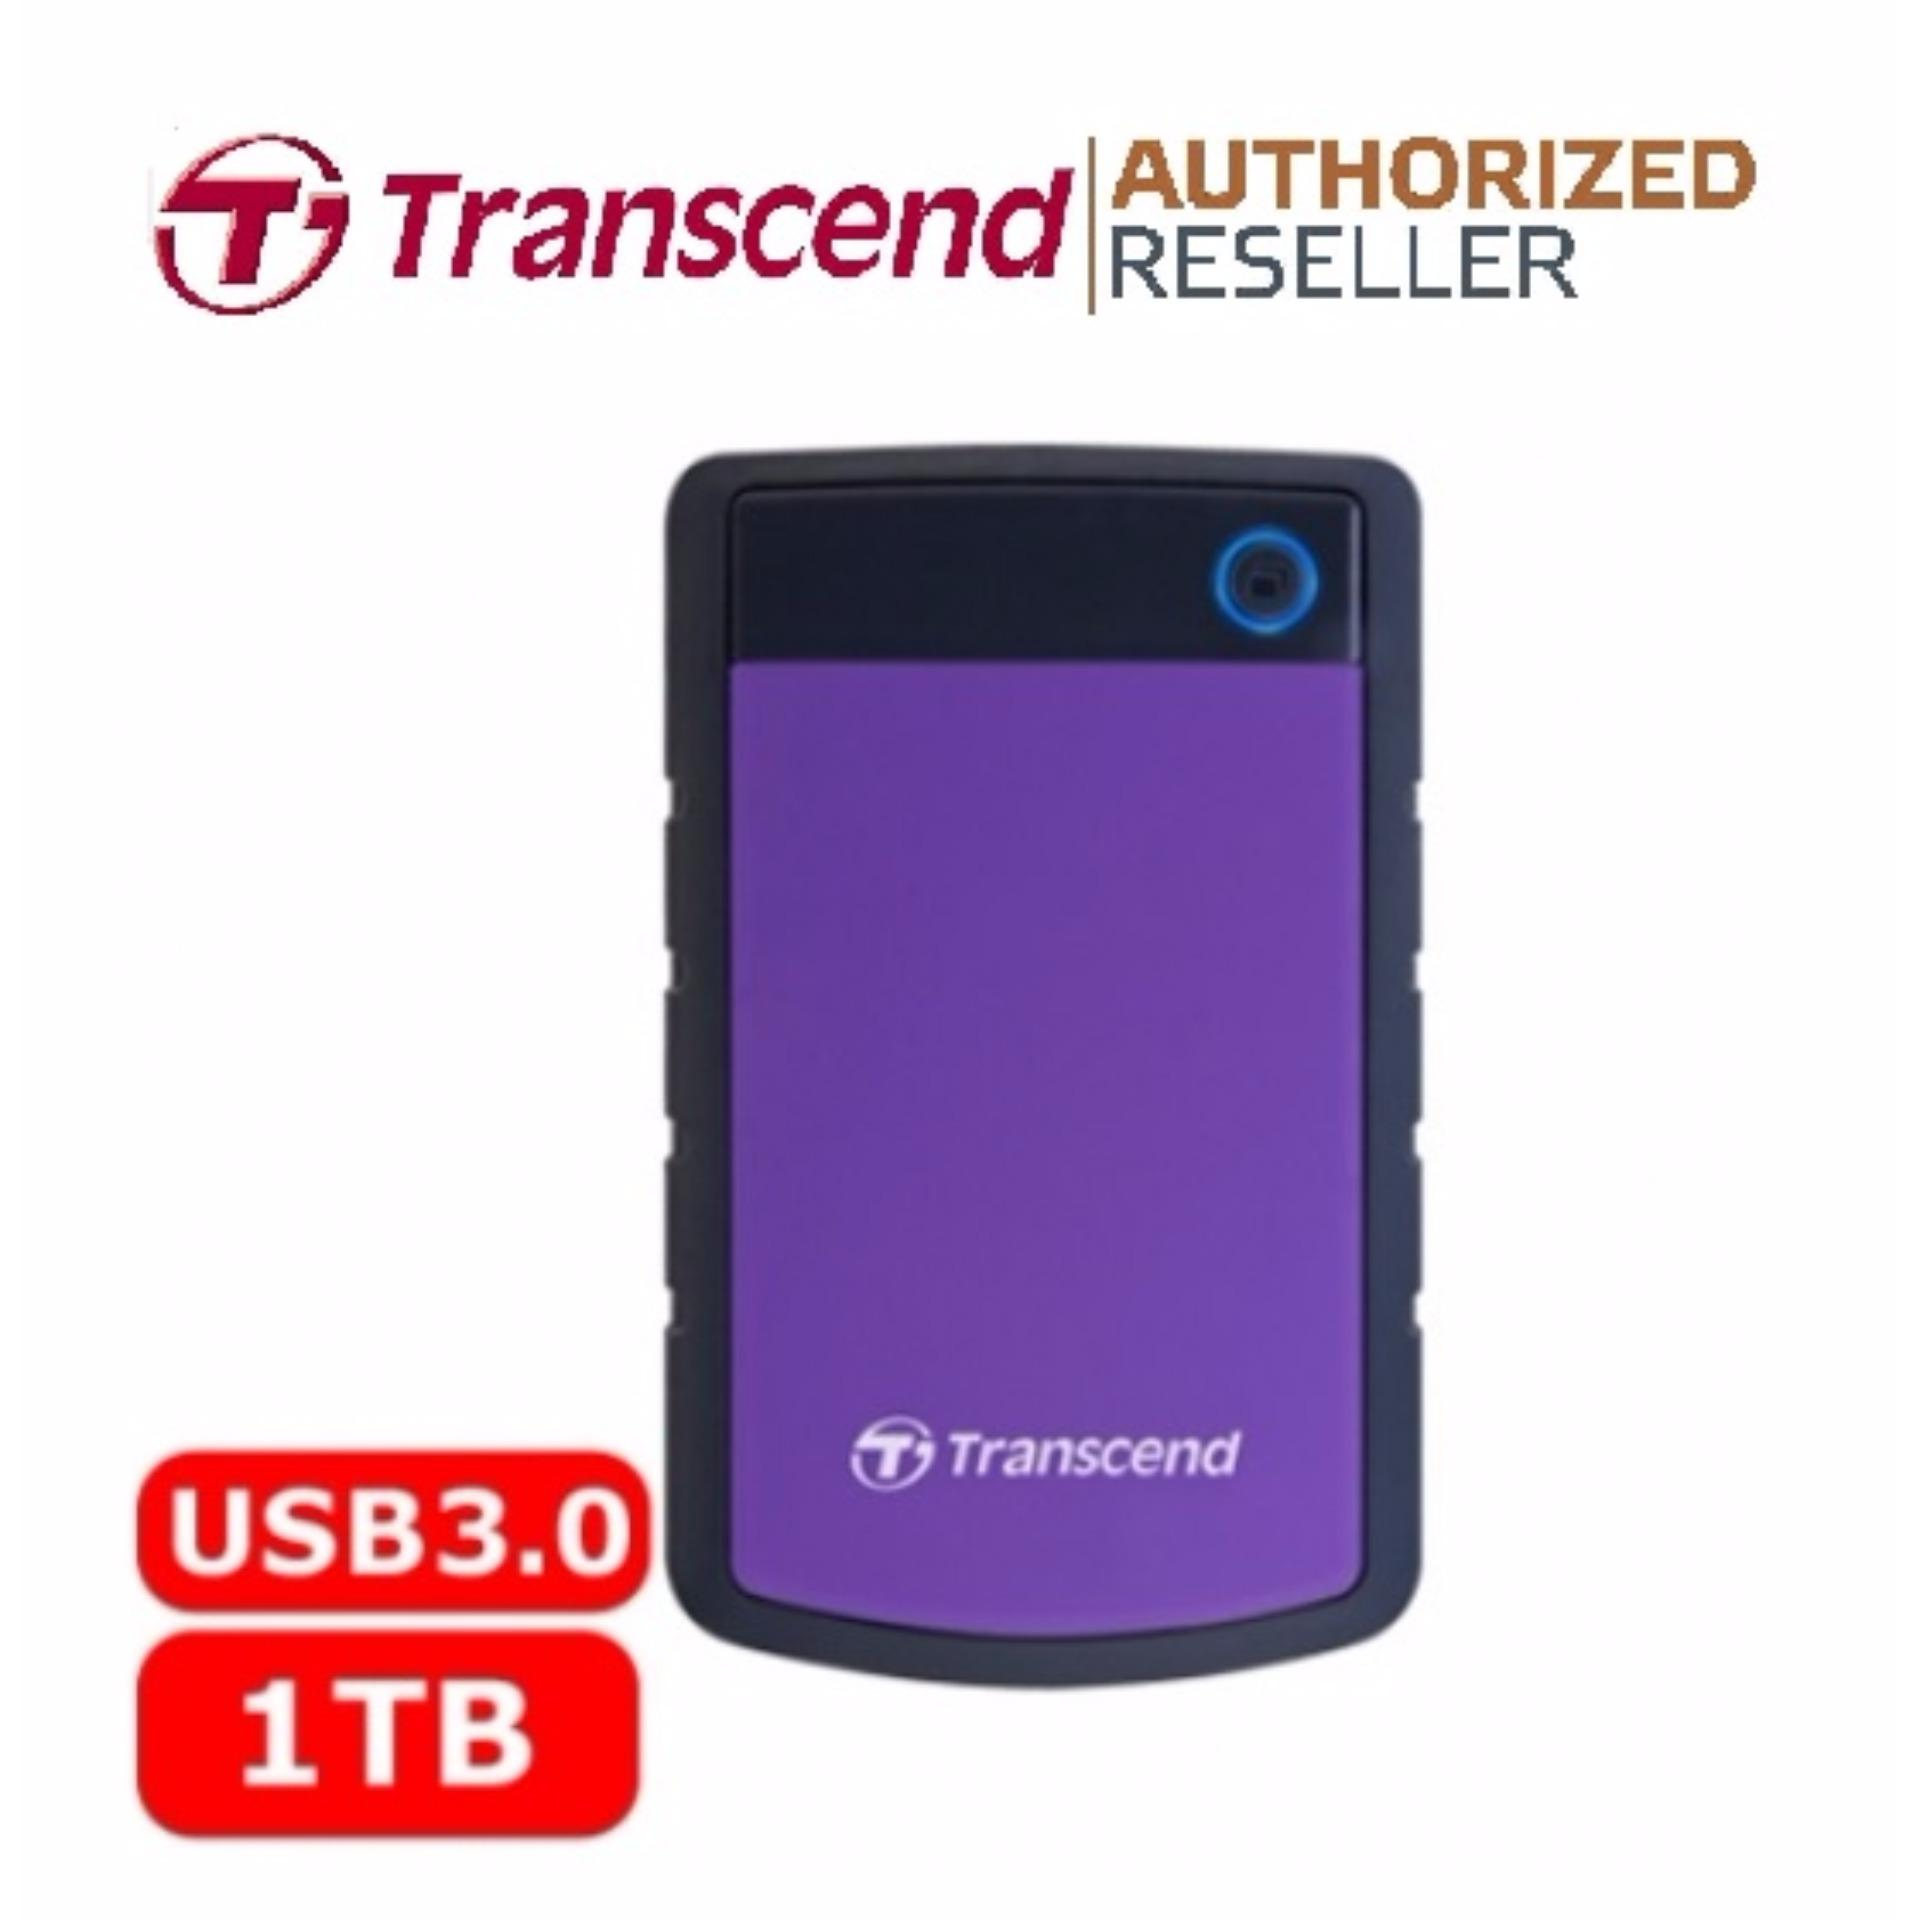 Philippines Transcend Storejet Rugged Compact 25h3p 1tb 30 Hardisk Eksternal 1 Tb 25h30 Portable Hard Drive Purple 3 Years